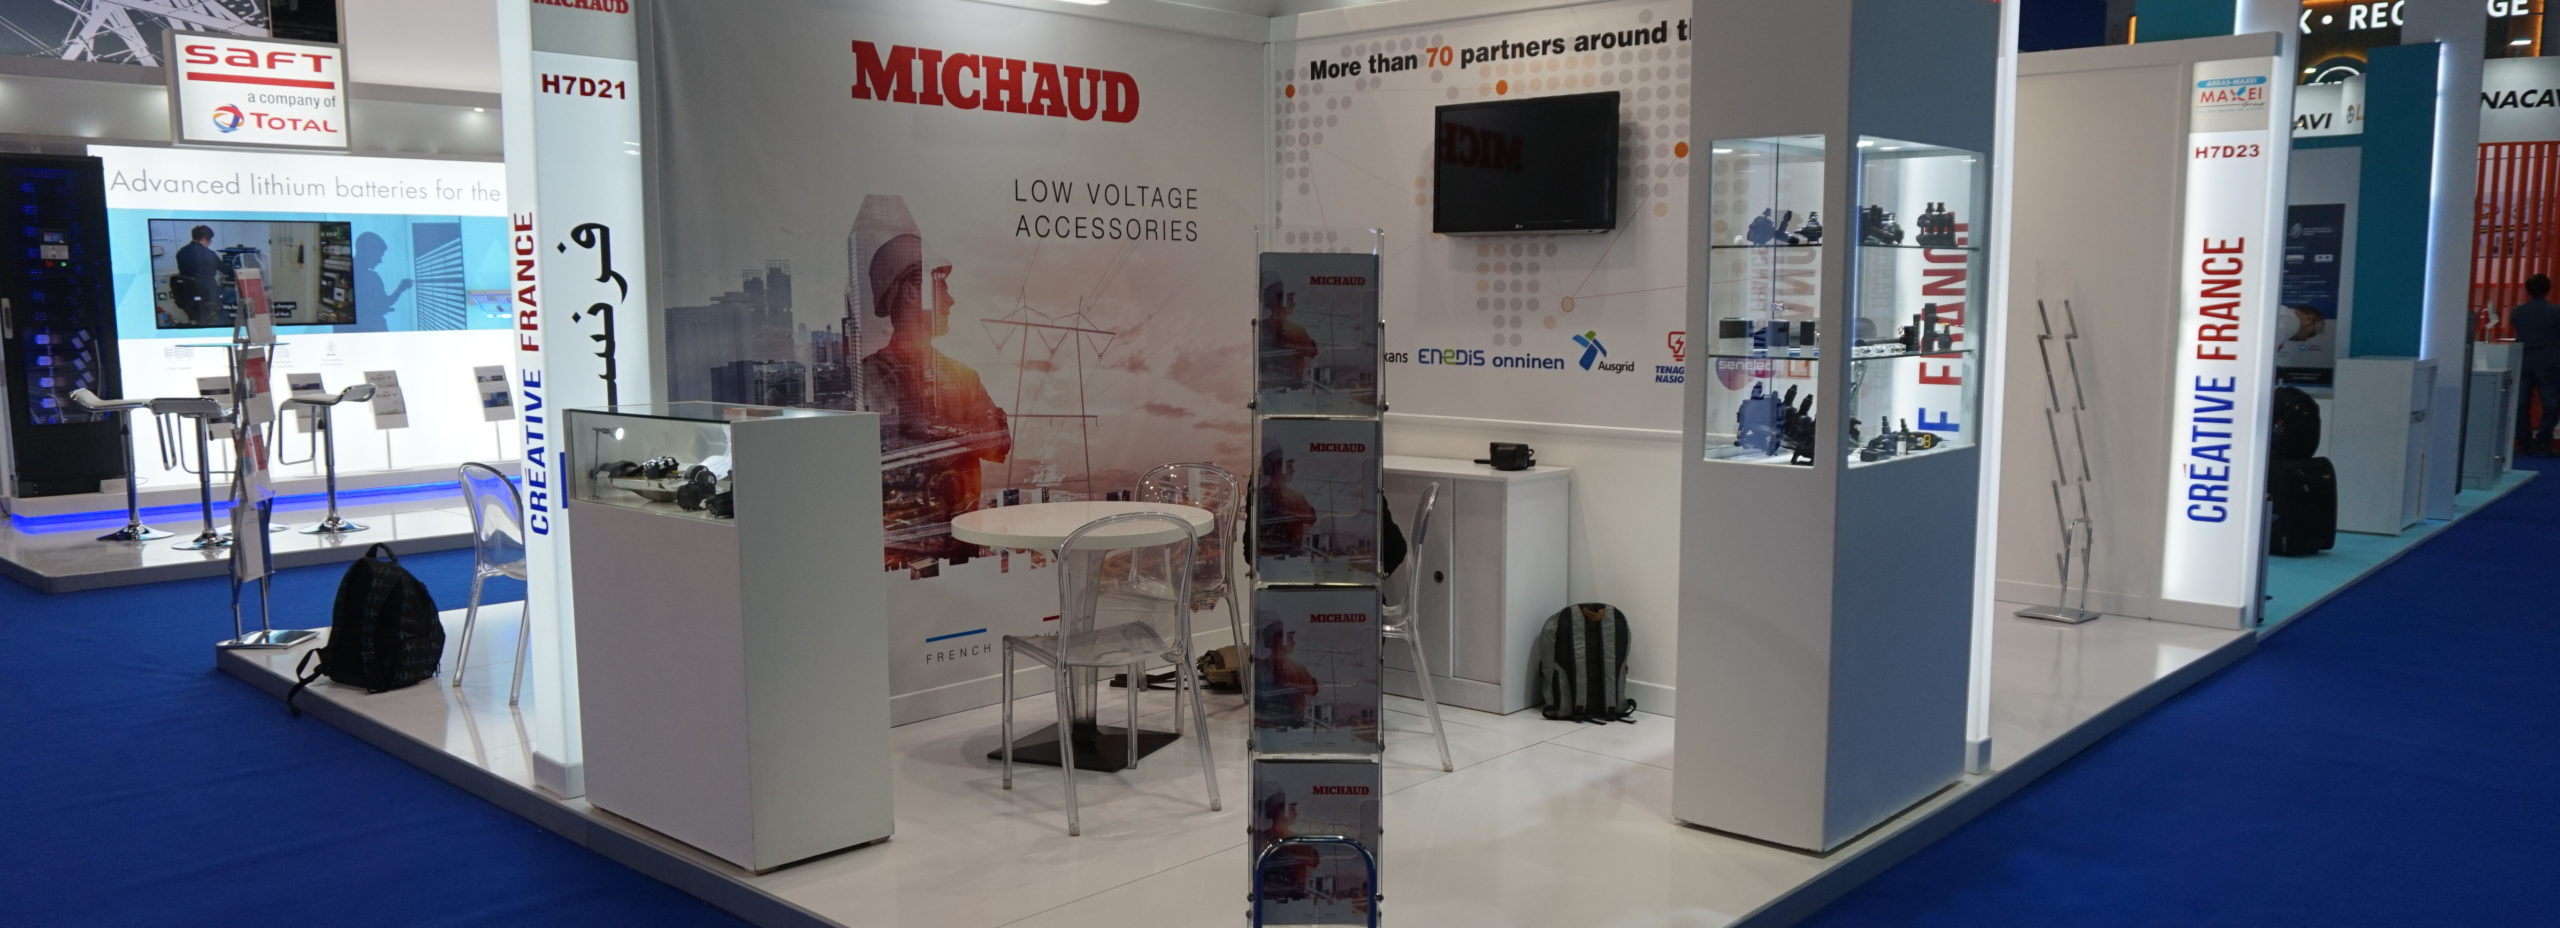 Booth Michaud show Middle Electricty 2019